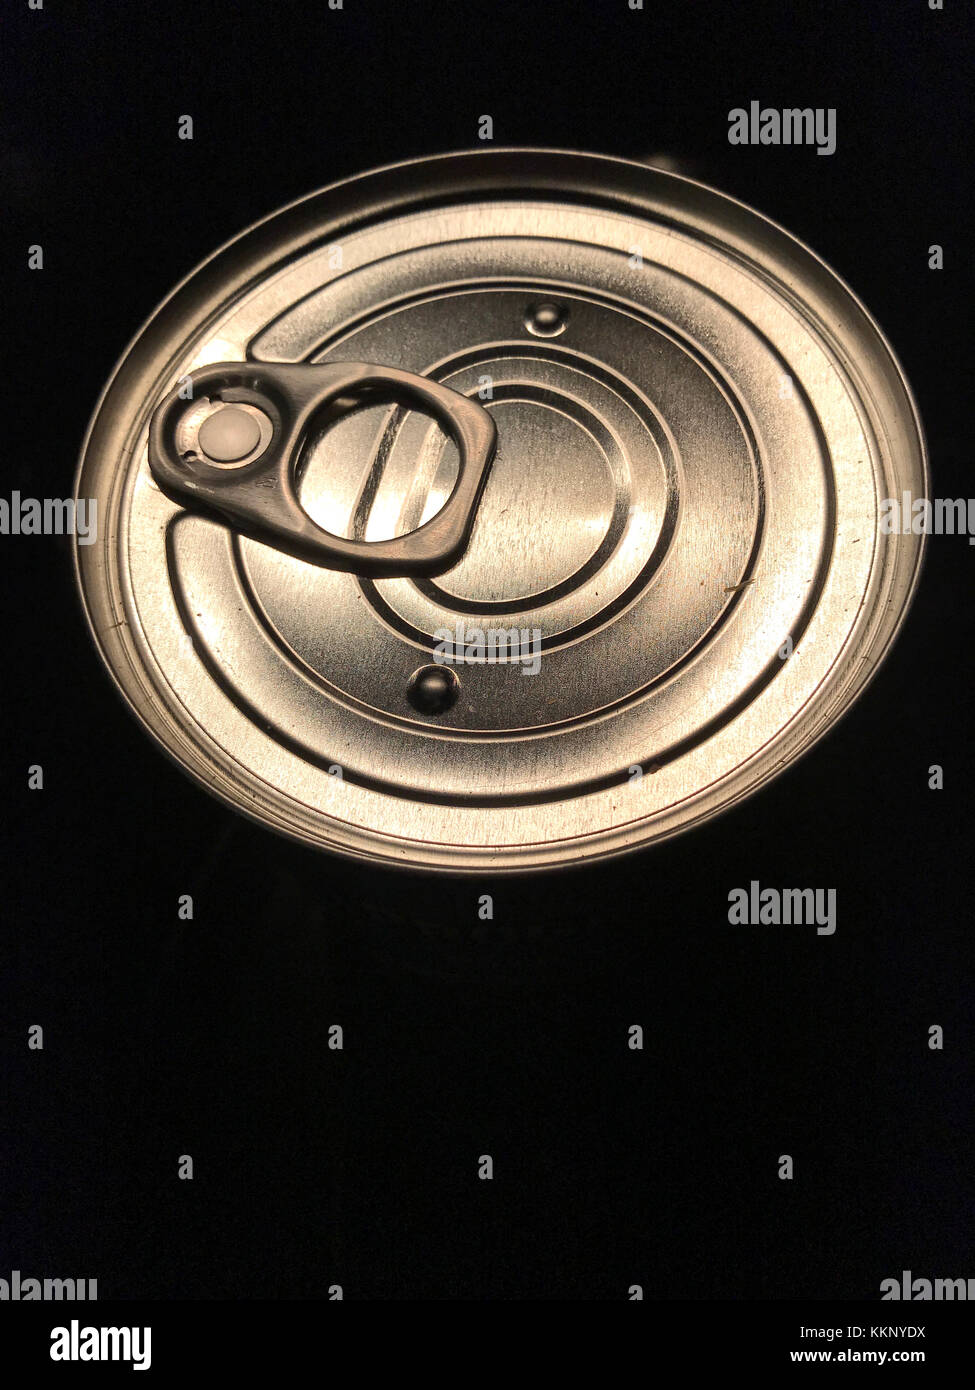 Topp can of pop with pop open ring. - Stock Image